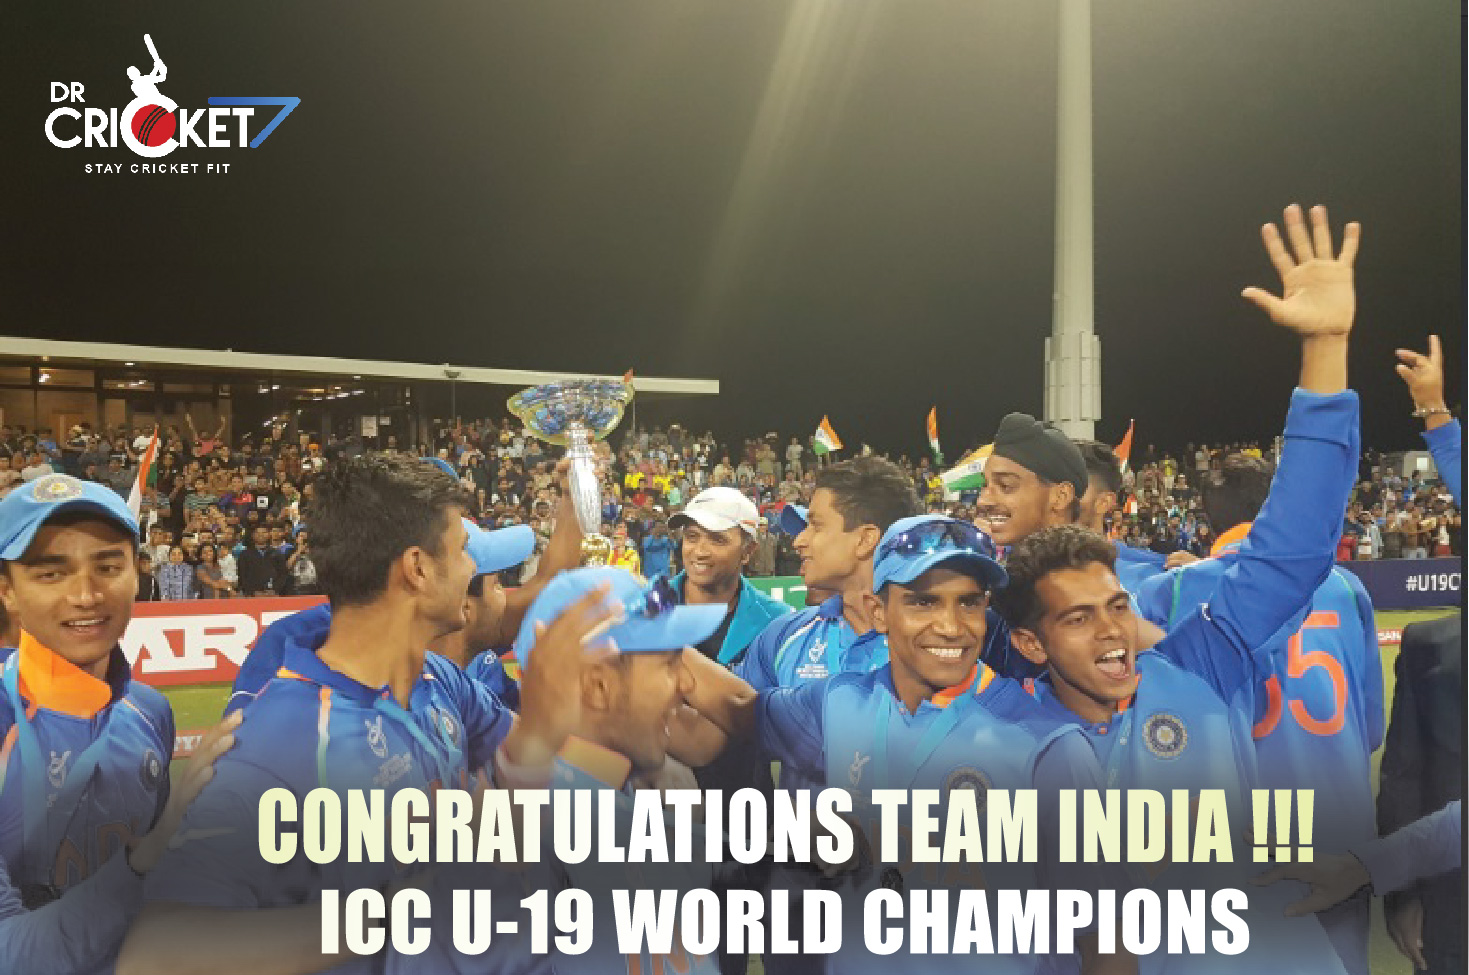 BCCI announces cash reward, Congratulates victorious India U-19 team